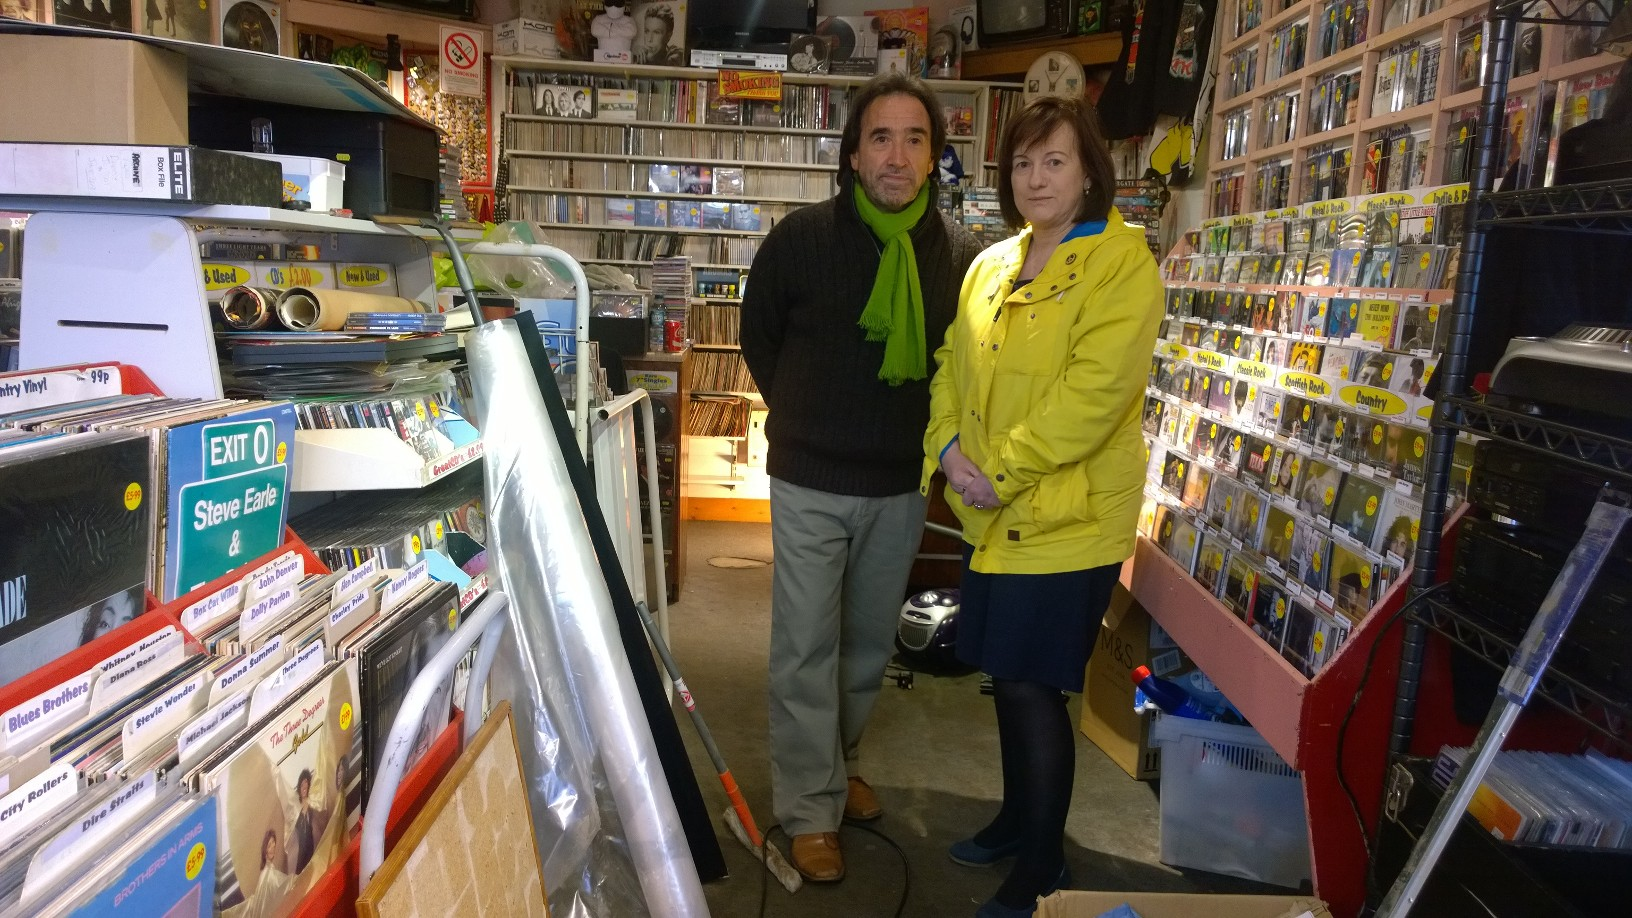 Joan_with_Rab_Smith_at_Domino_Records.jpg